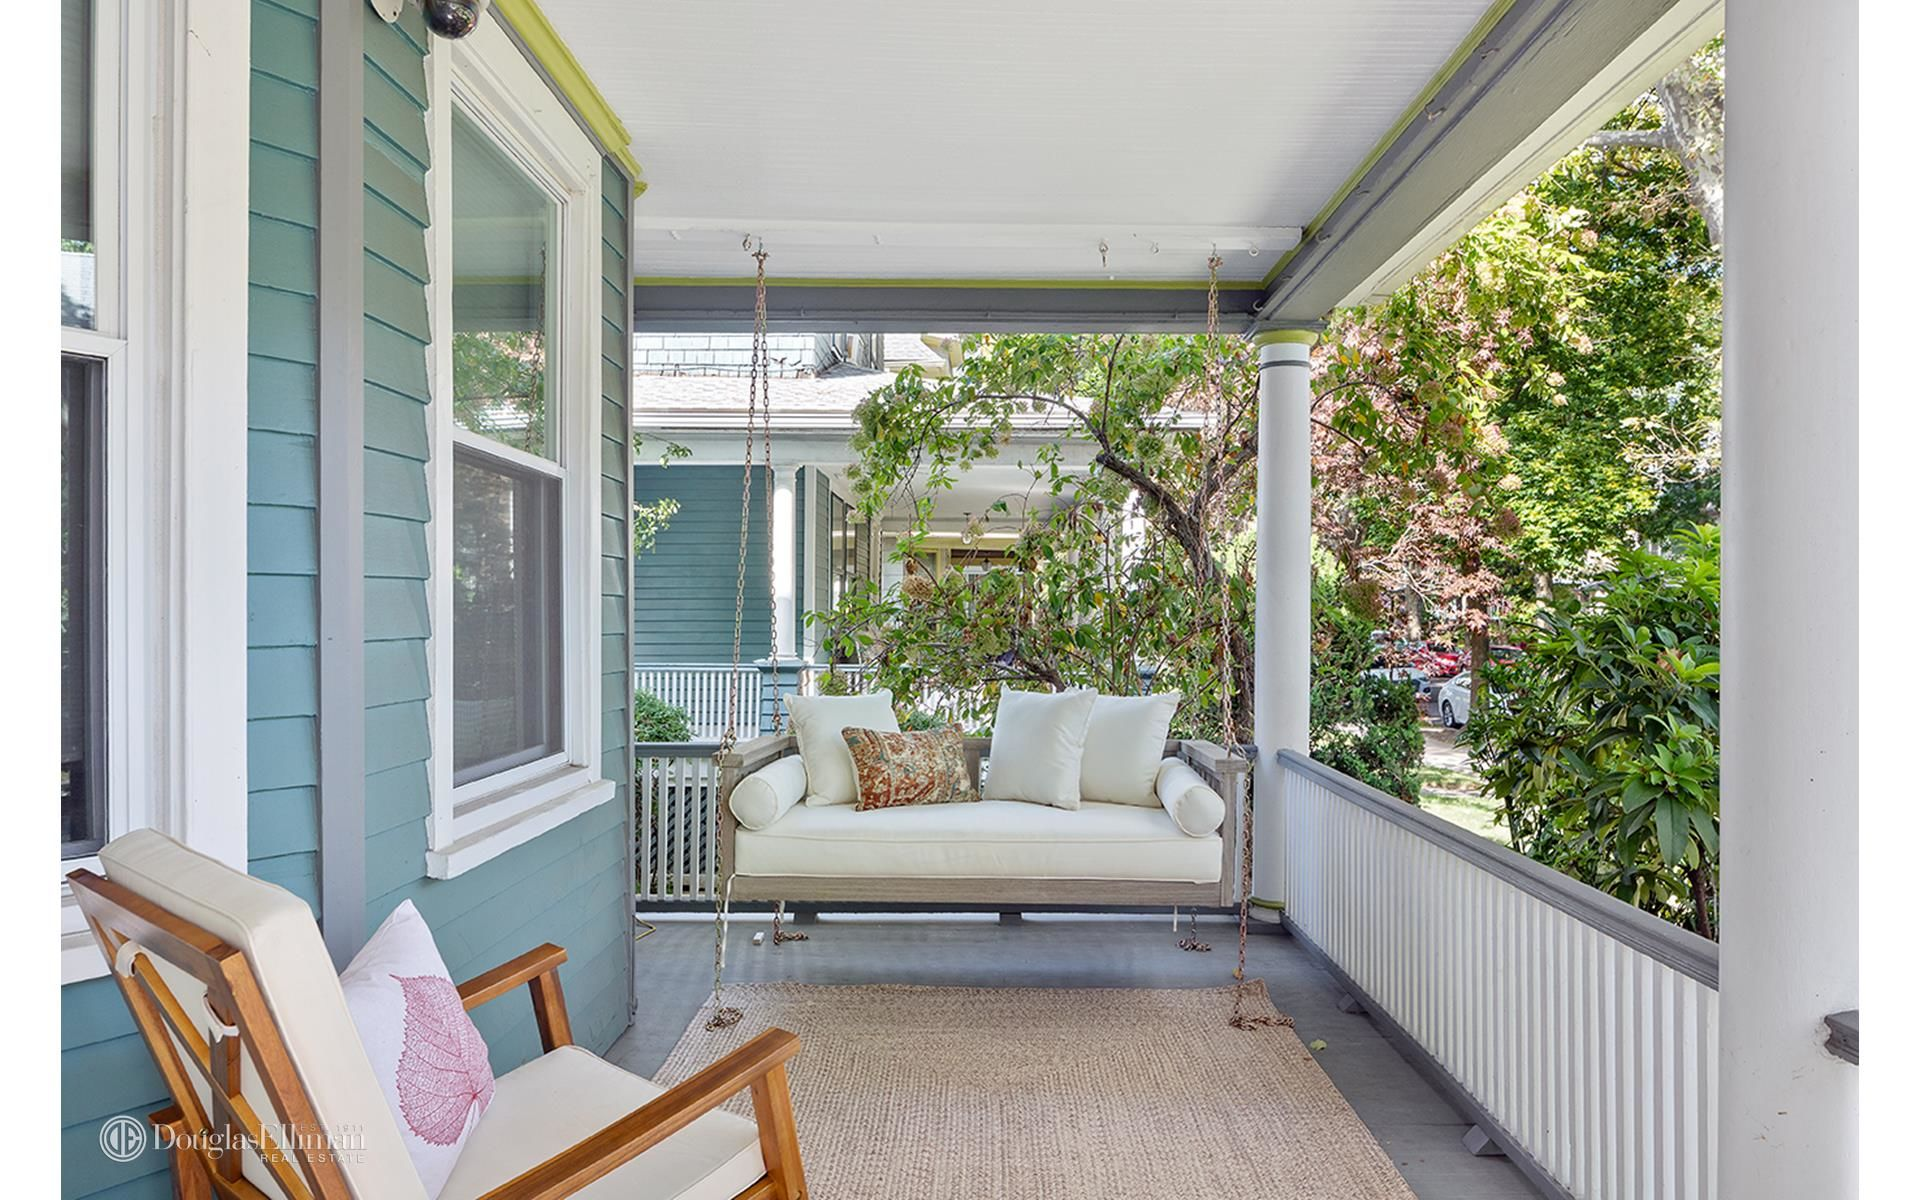 498 Westminster Rd Photo 1 - ELLIMAN-4609557